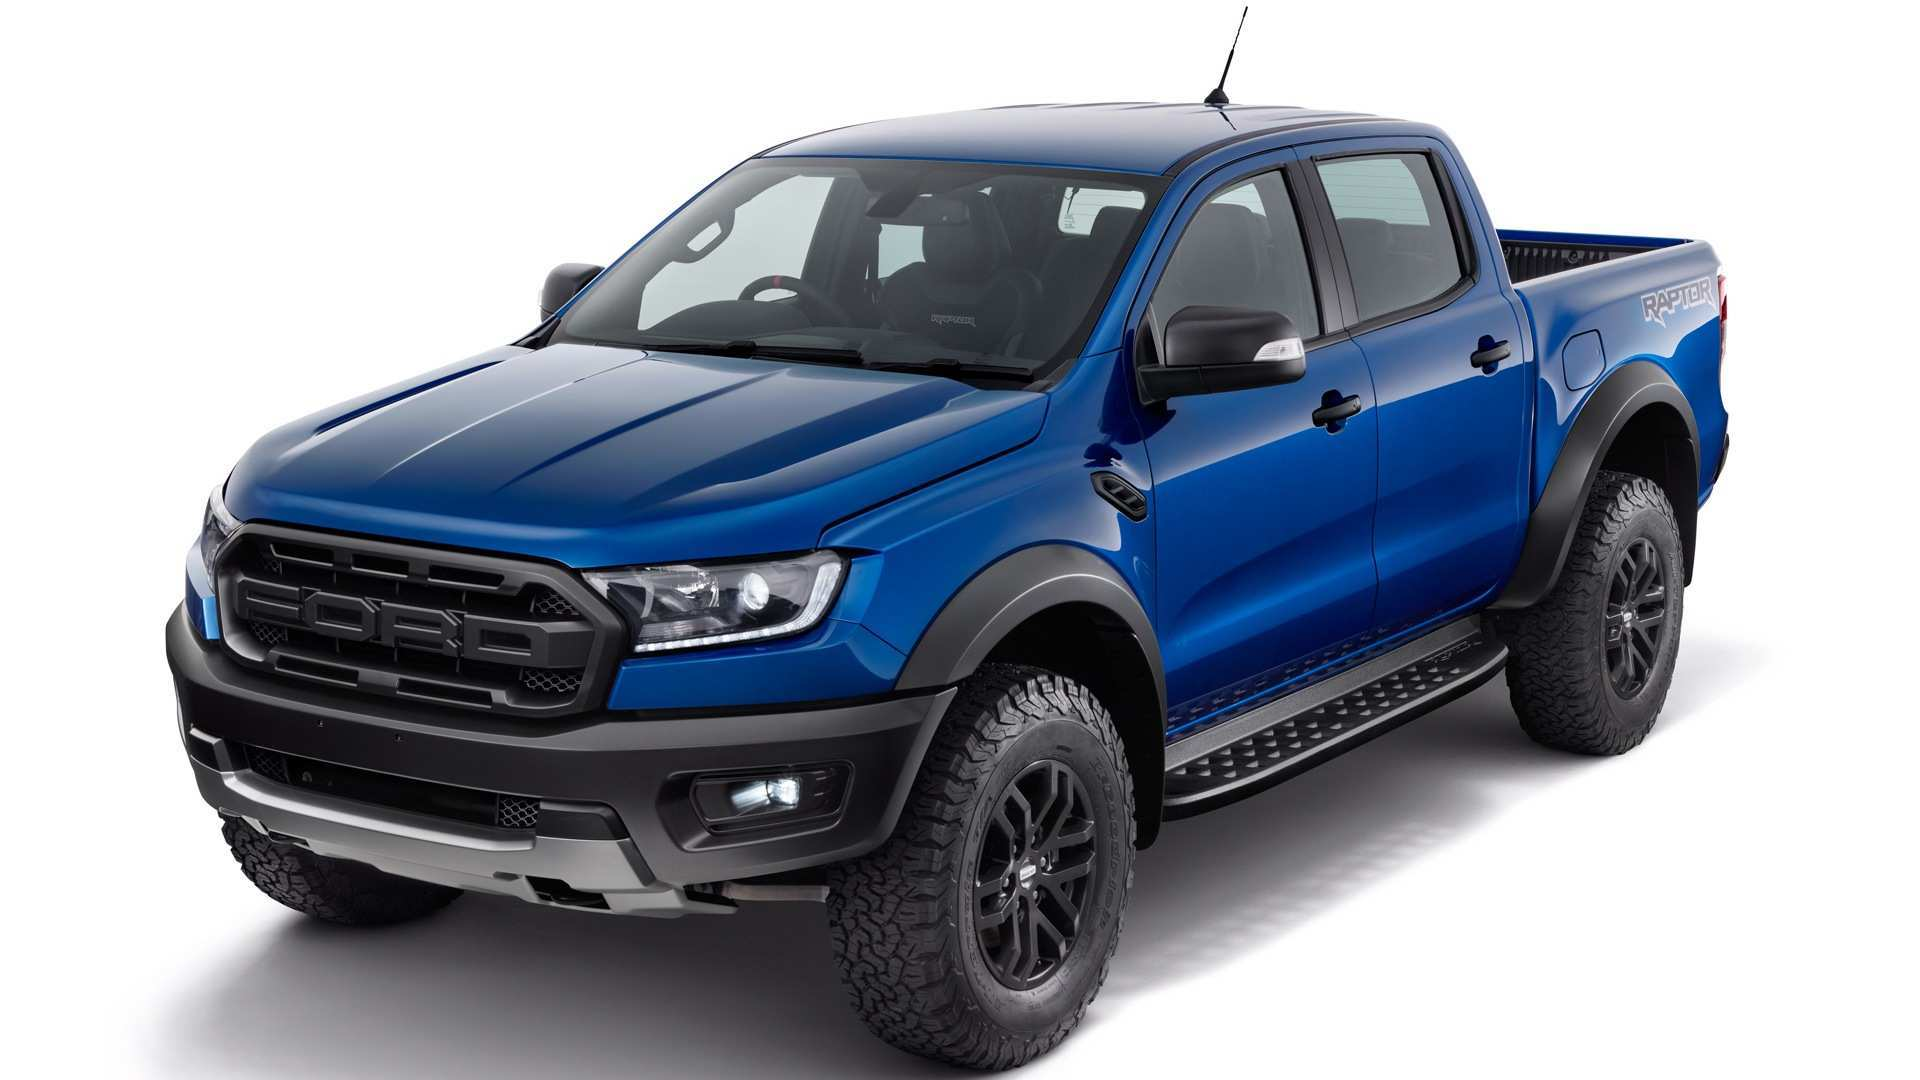 36 New 2019 Ford Ranger Raptor Redesign and Concept by 2019 Ford Ranger Raptor